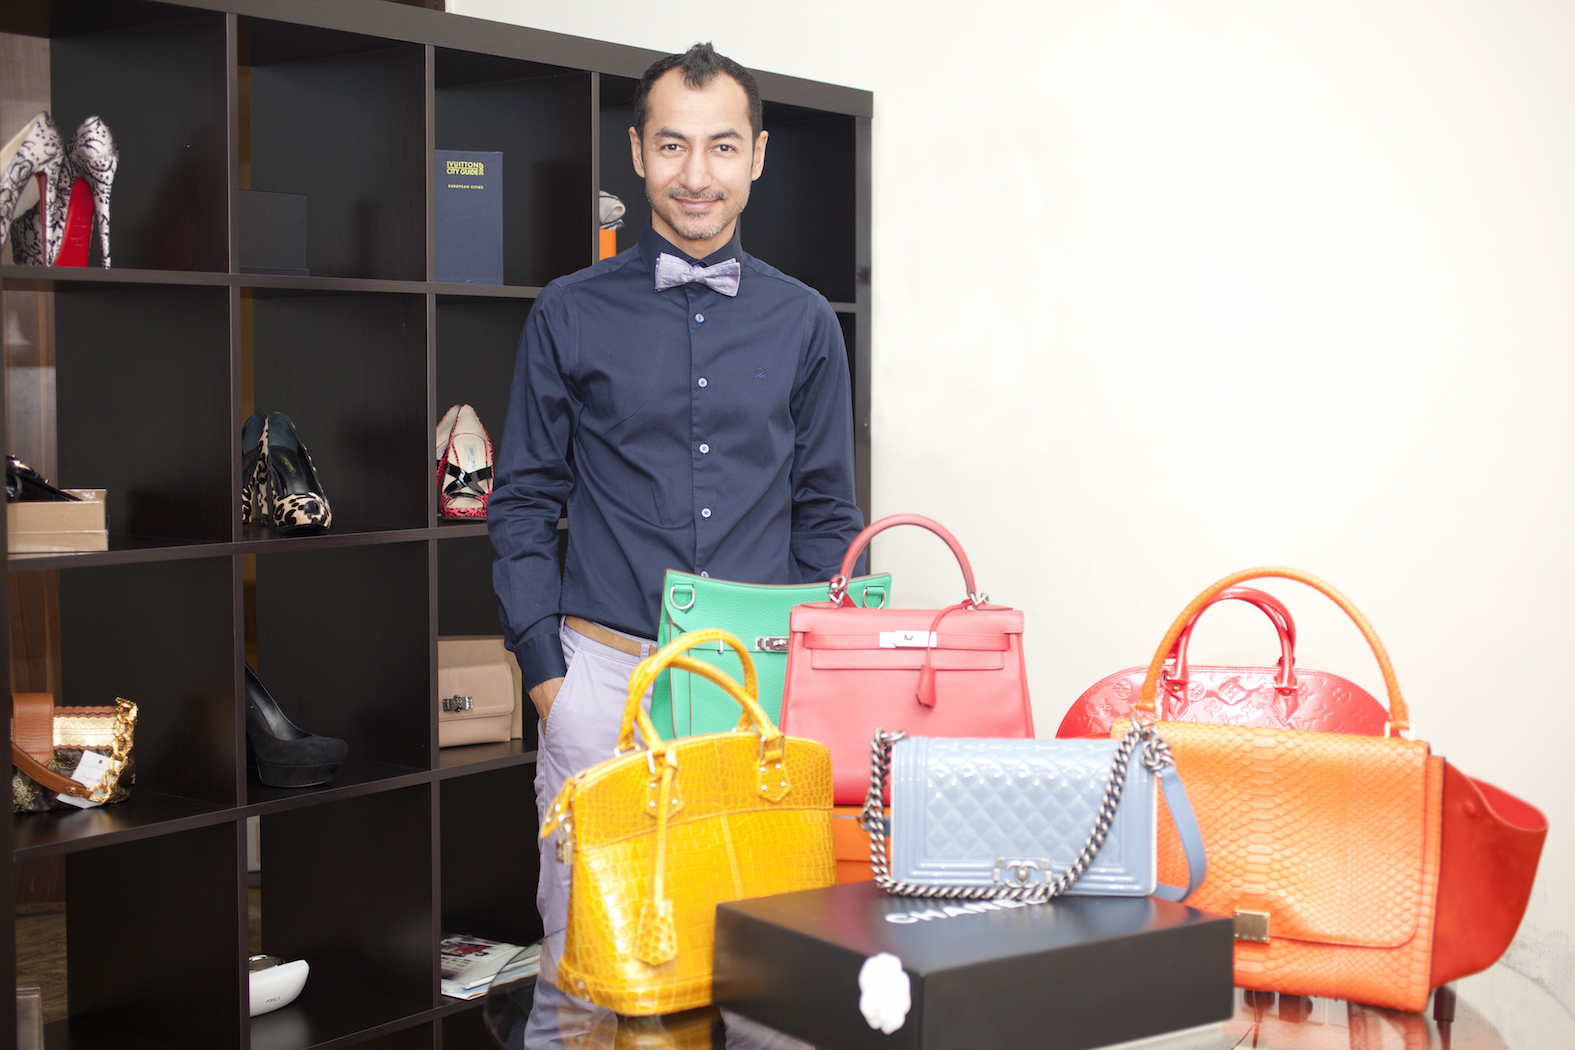 The Luxury Closet Bags $8.7 M In Growth Funding From Investors Led By MEVP